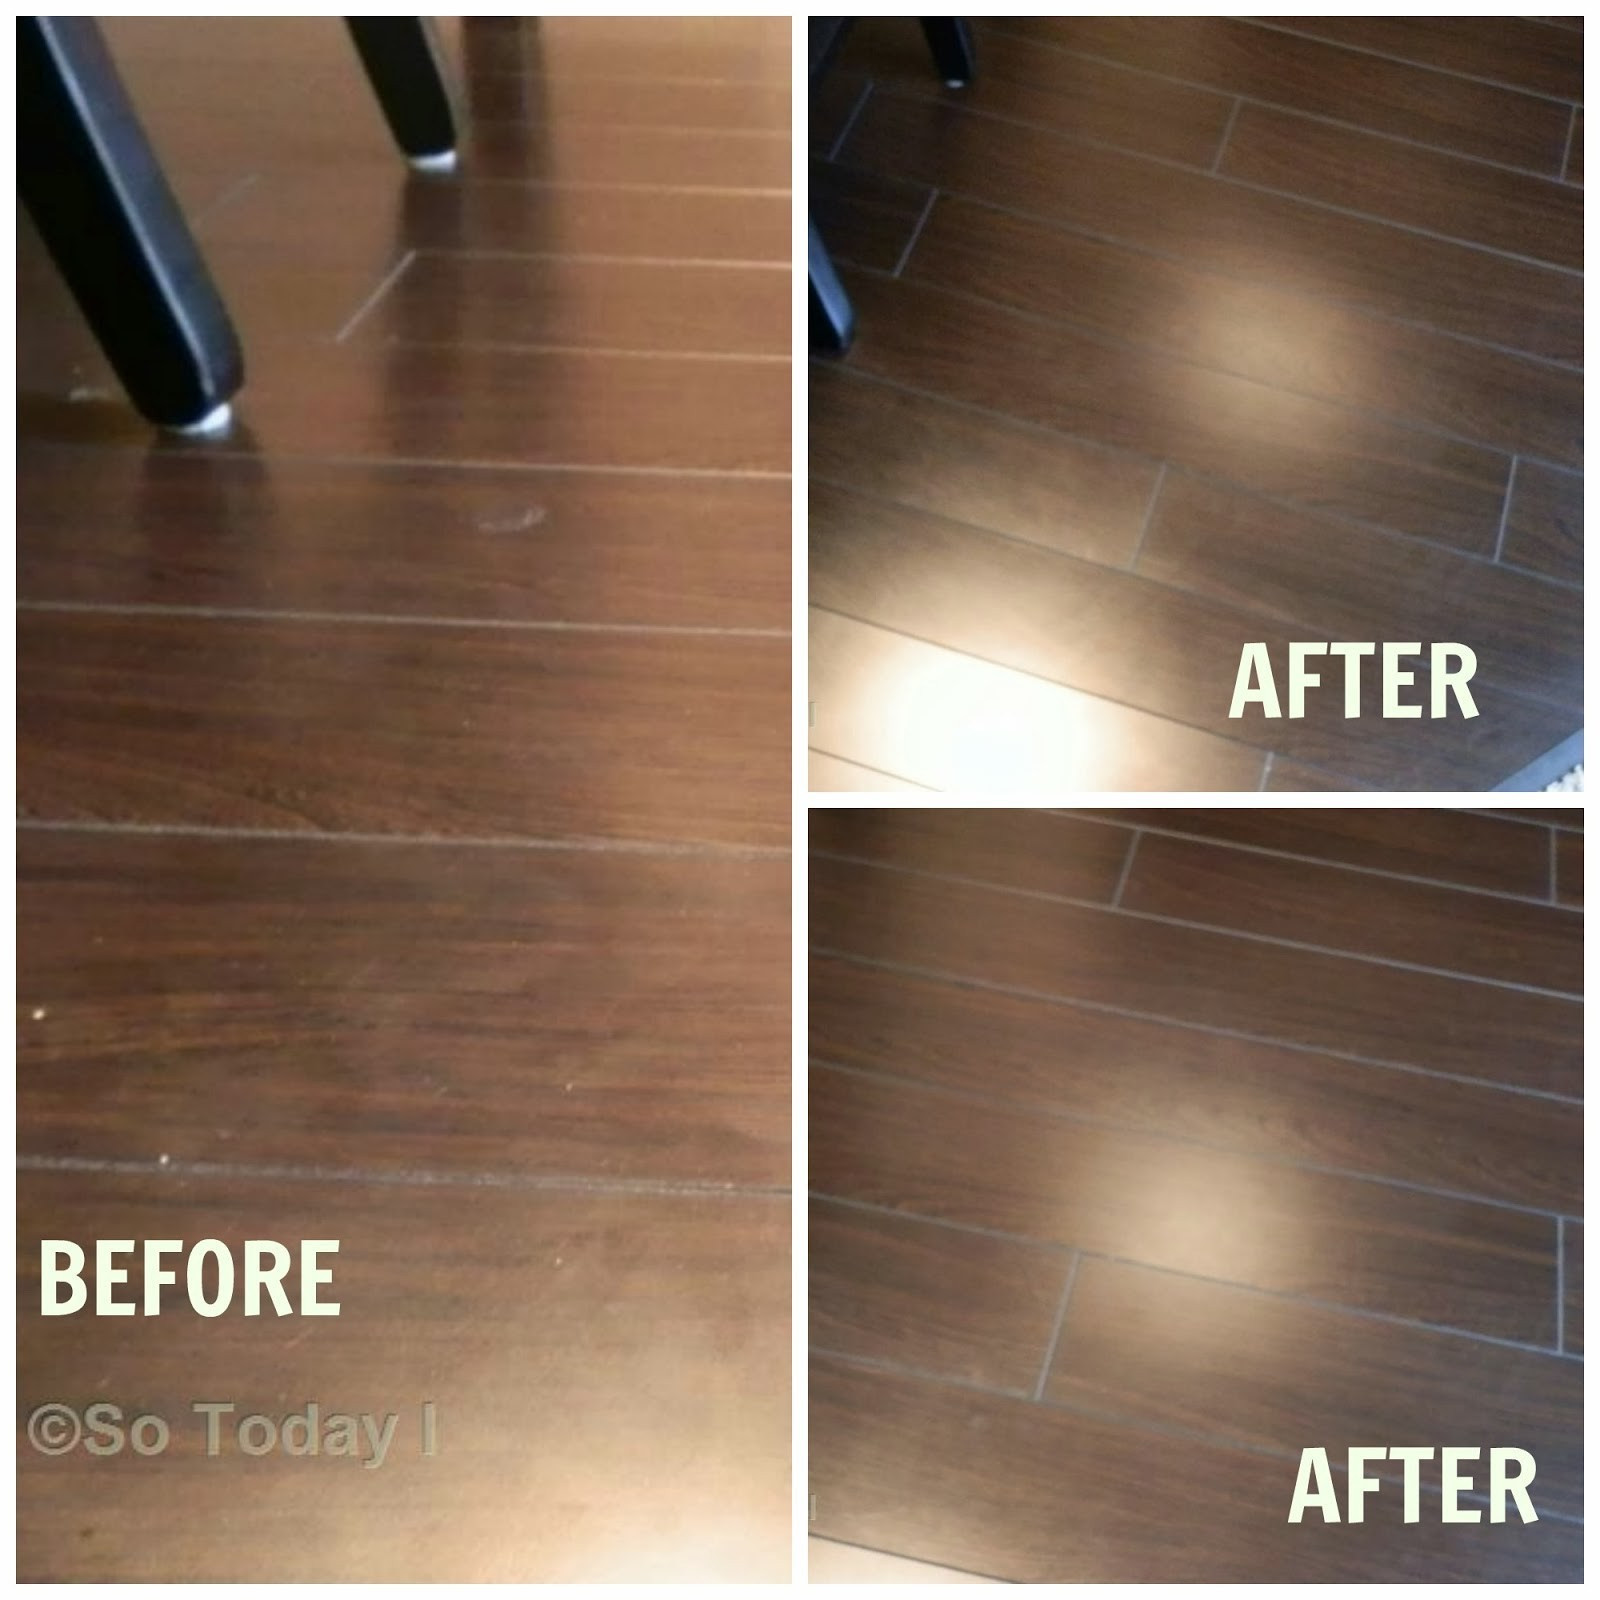 cleaning engineered hardwood floors steam mop of mop for wood floors medium size of hardwood floor engineered in hardwood lummy laminate cleaner emerging how to clean wooding keeping my ignite show way s without leaving